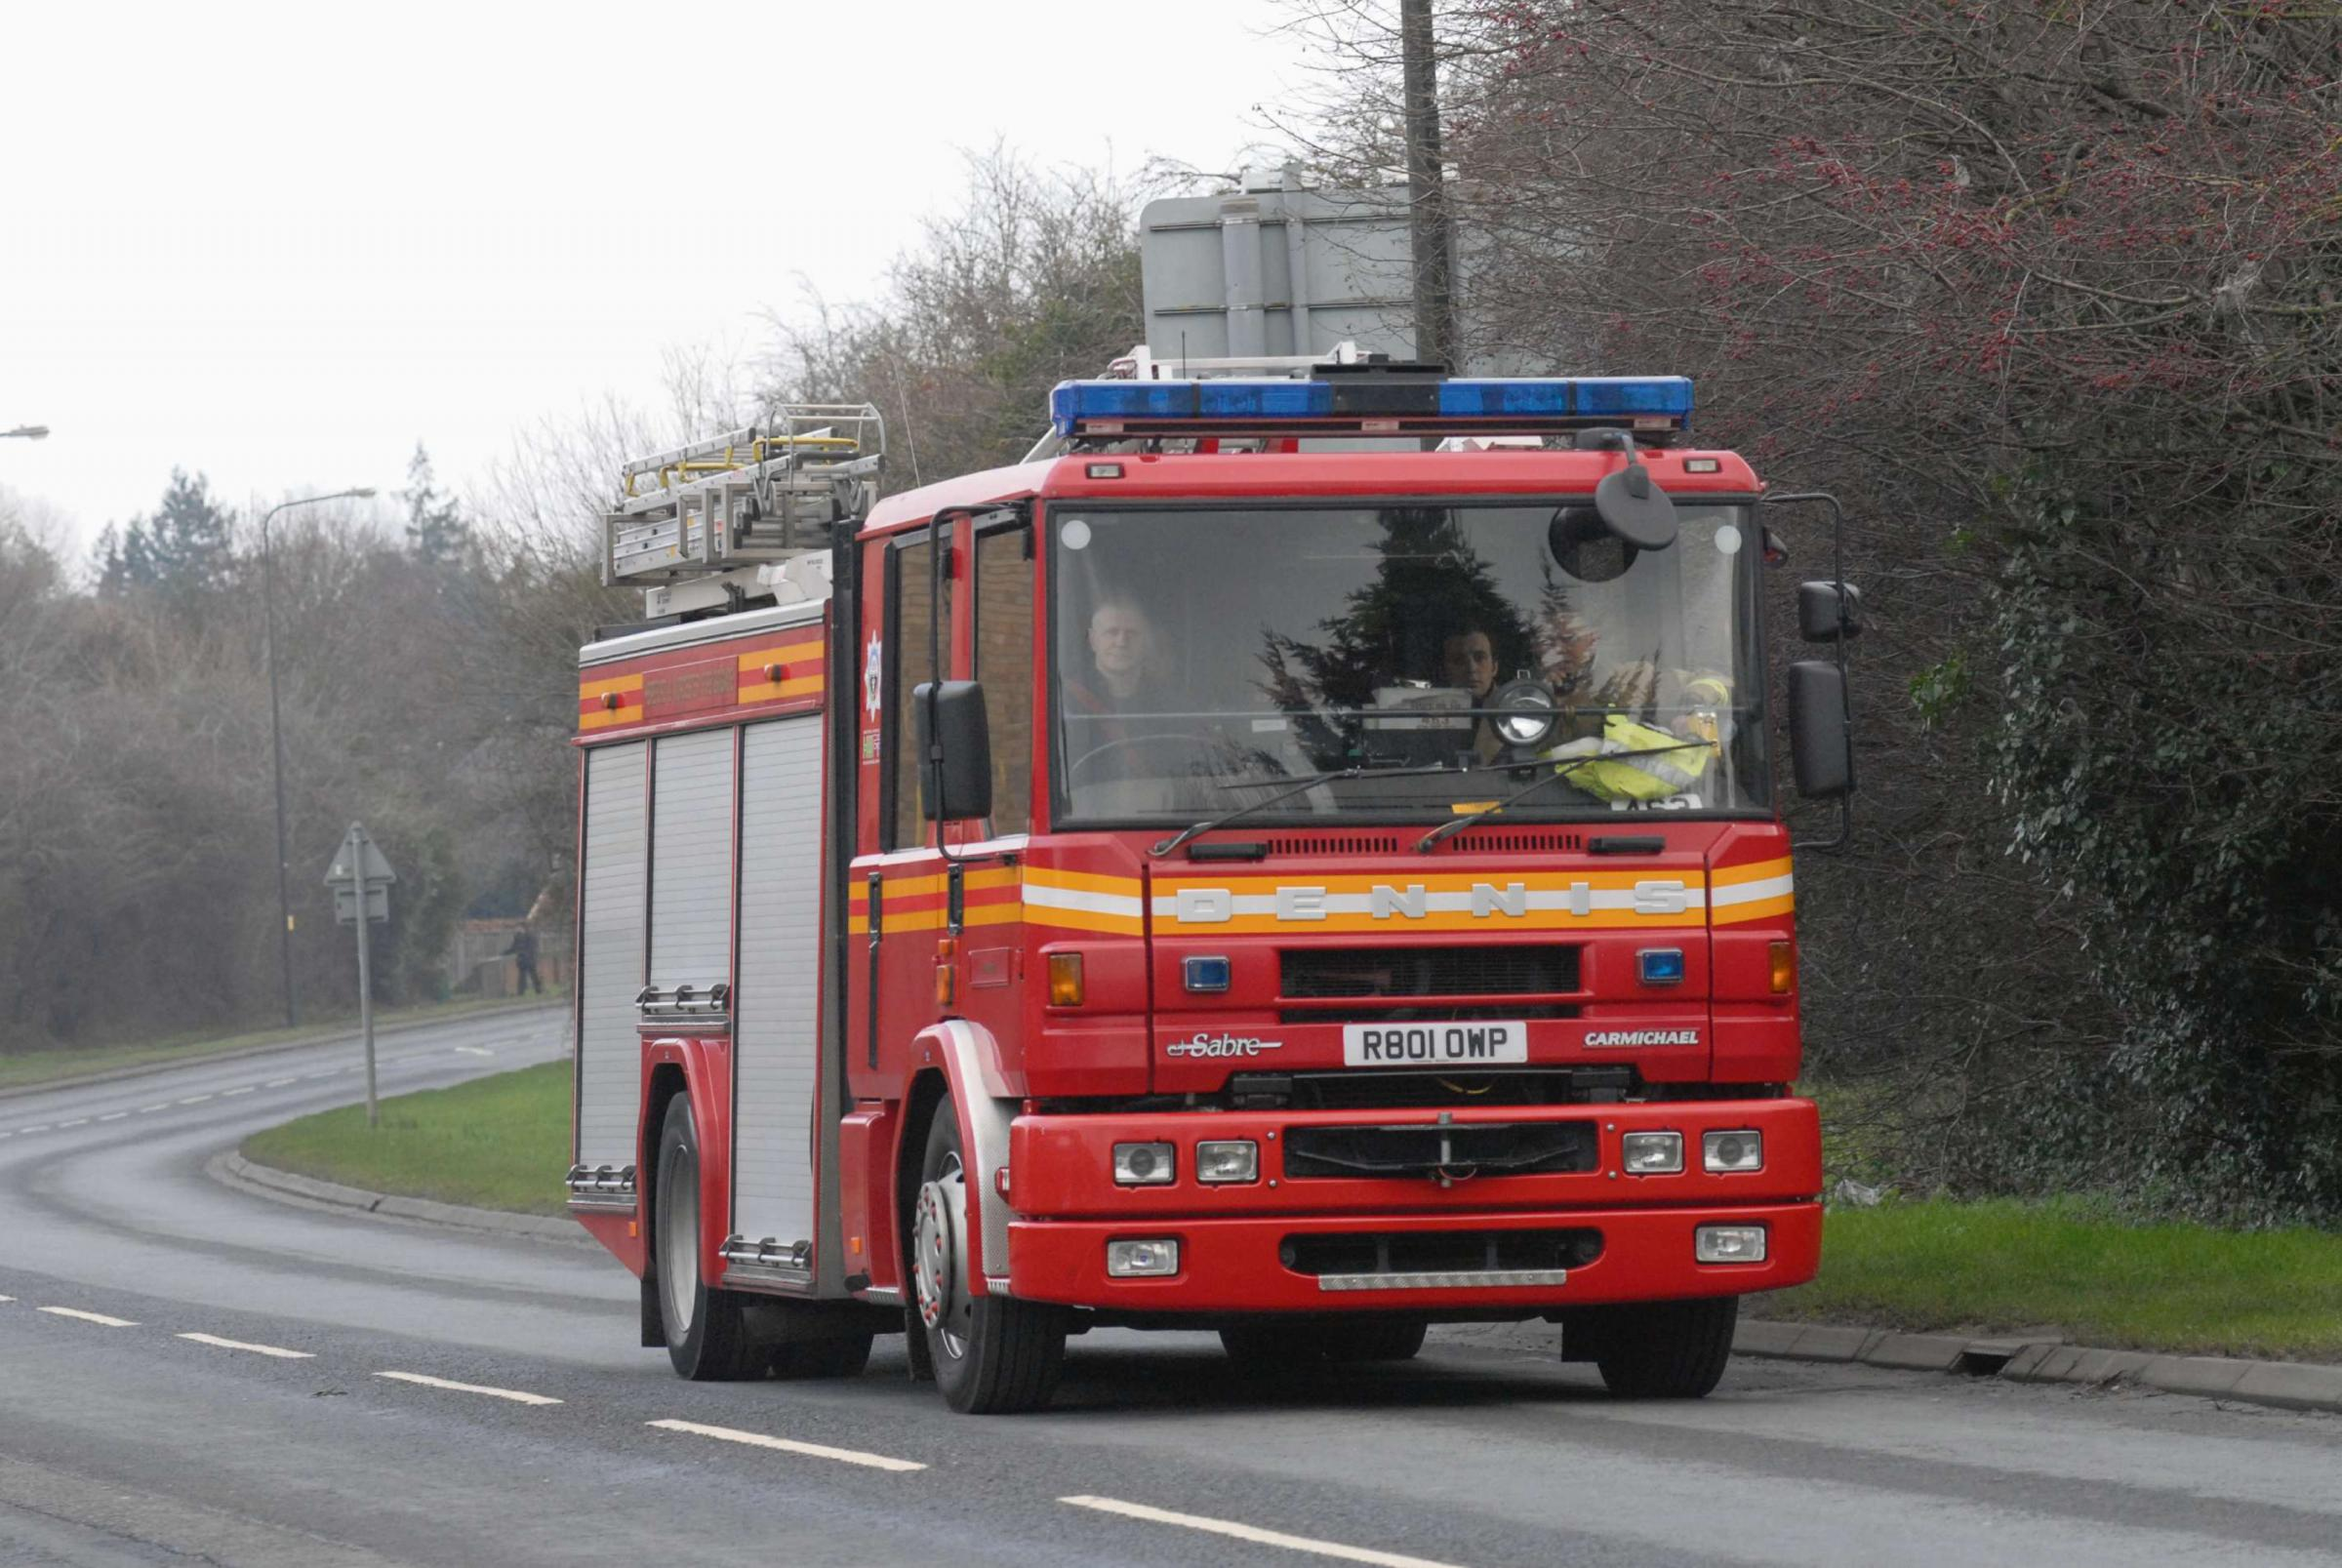 Man dies in Torquay house fire